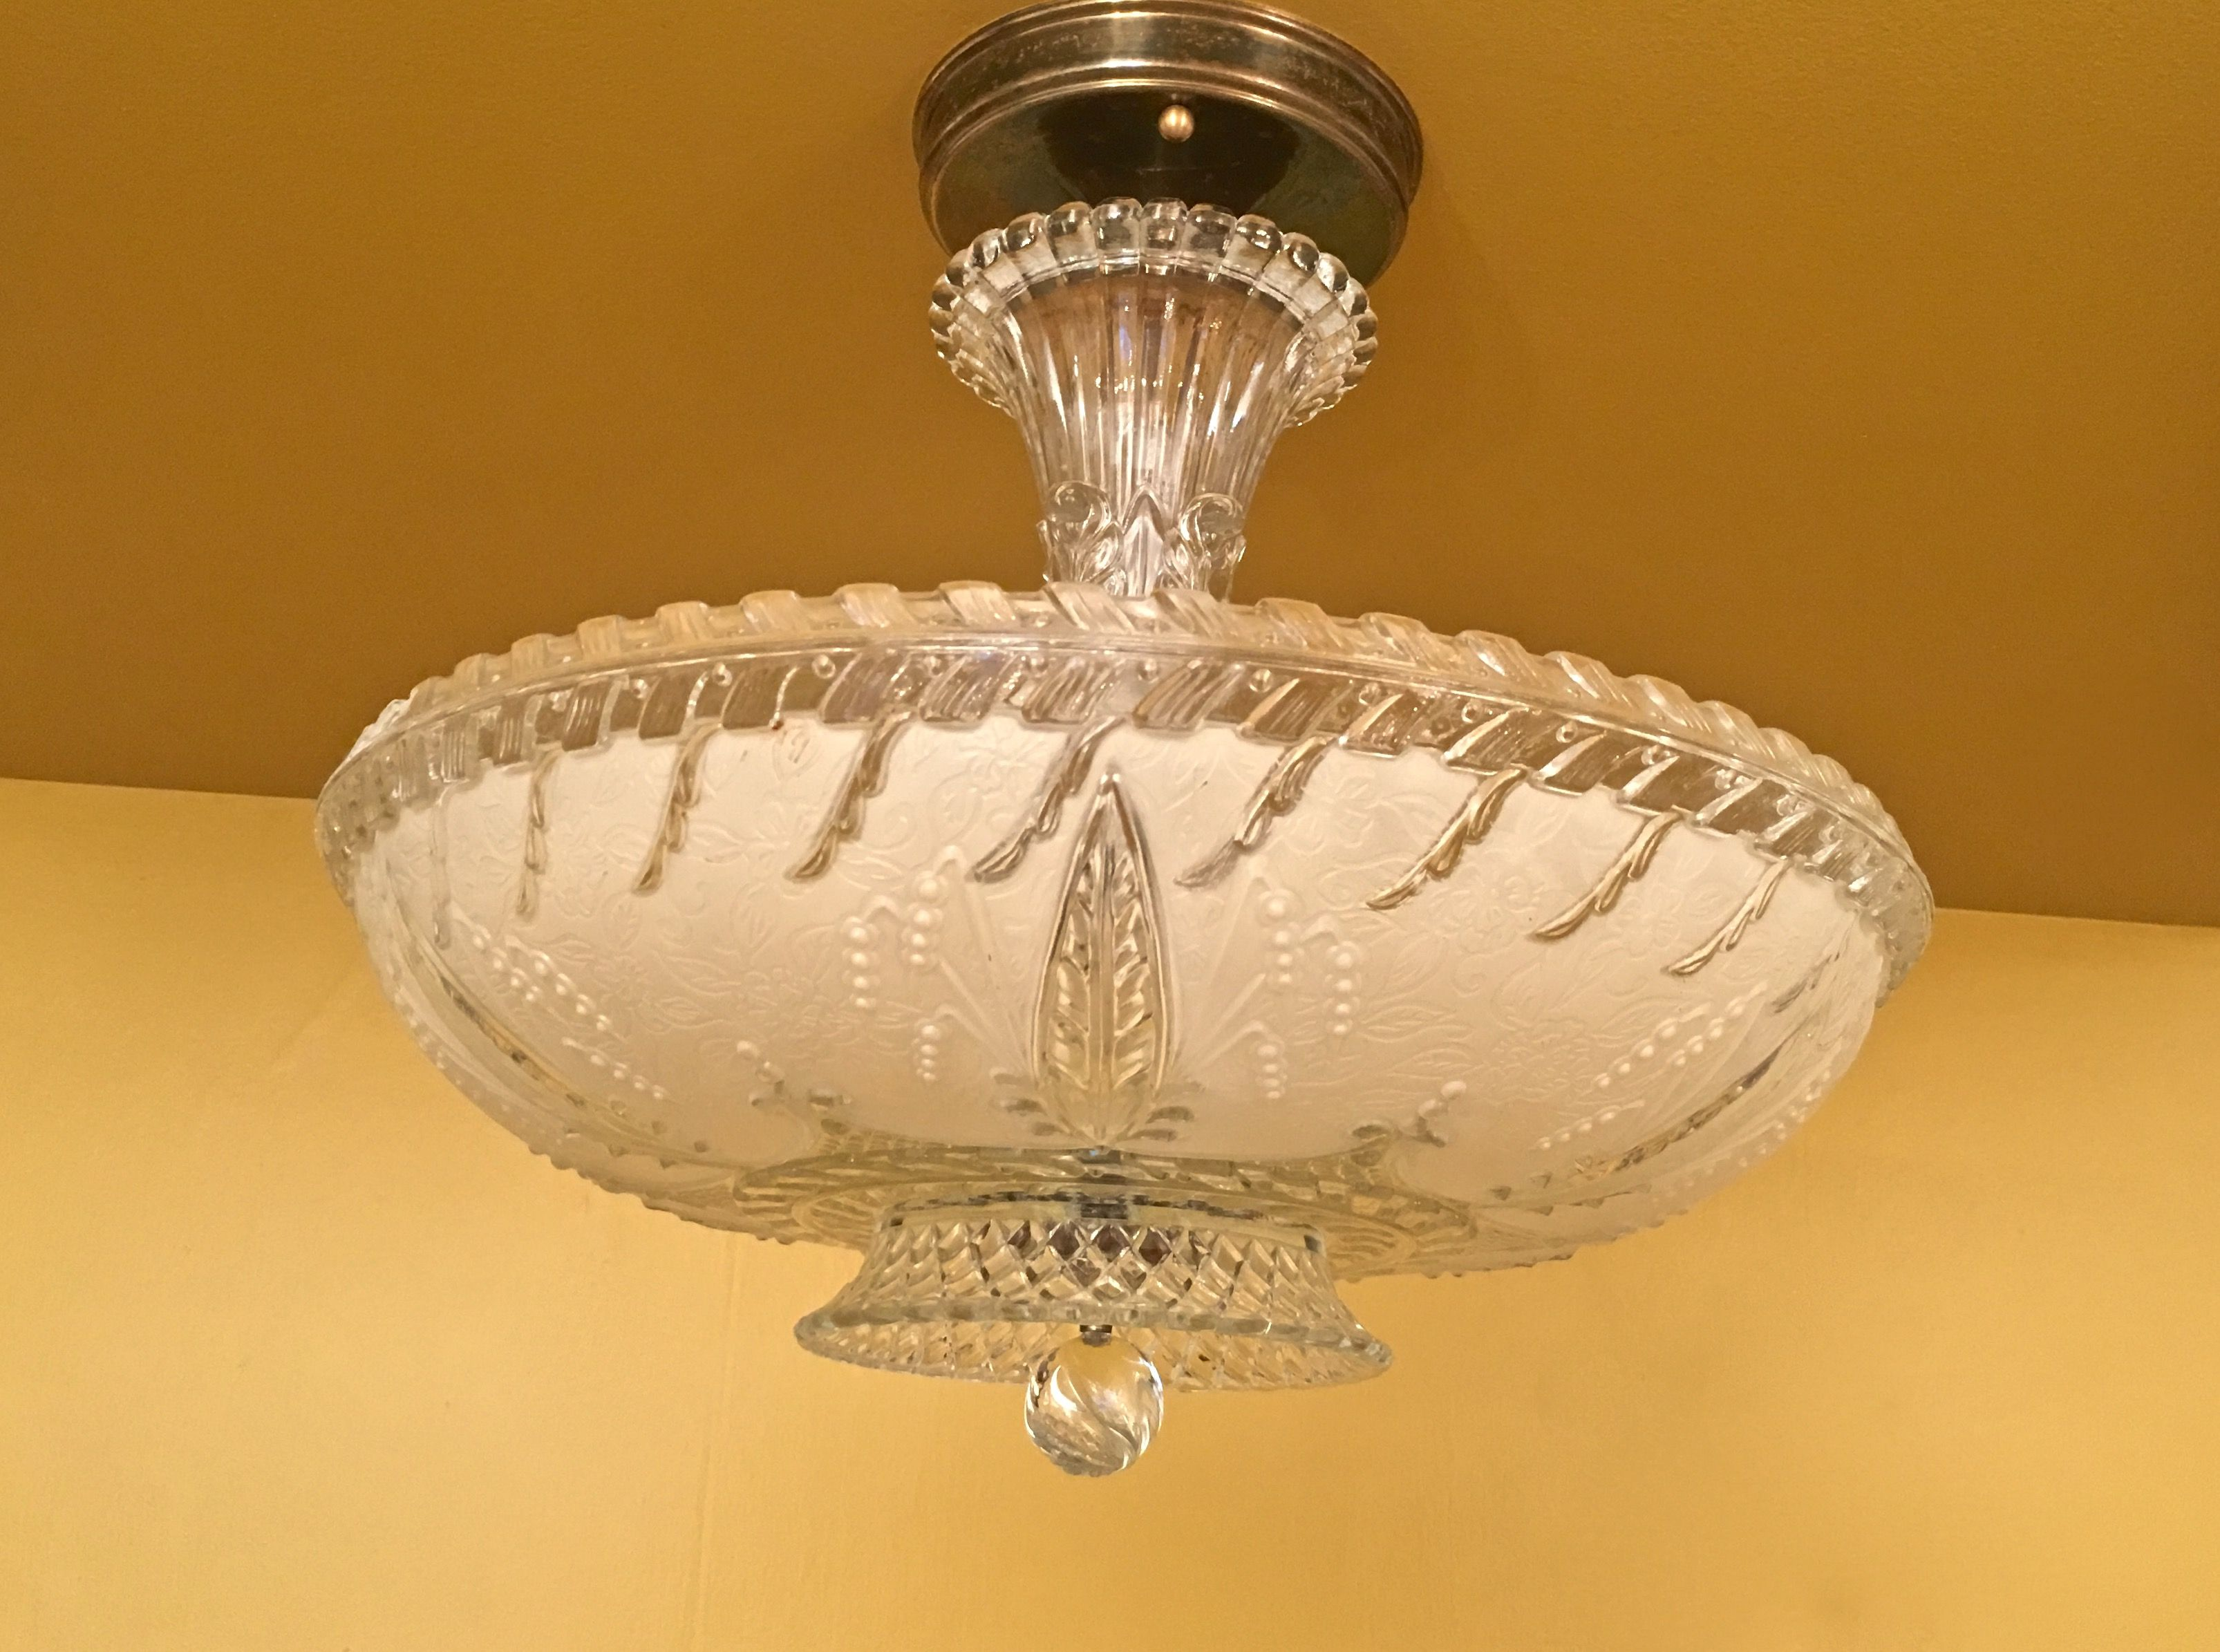 Stunning 1940s porcelier light fixture